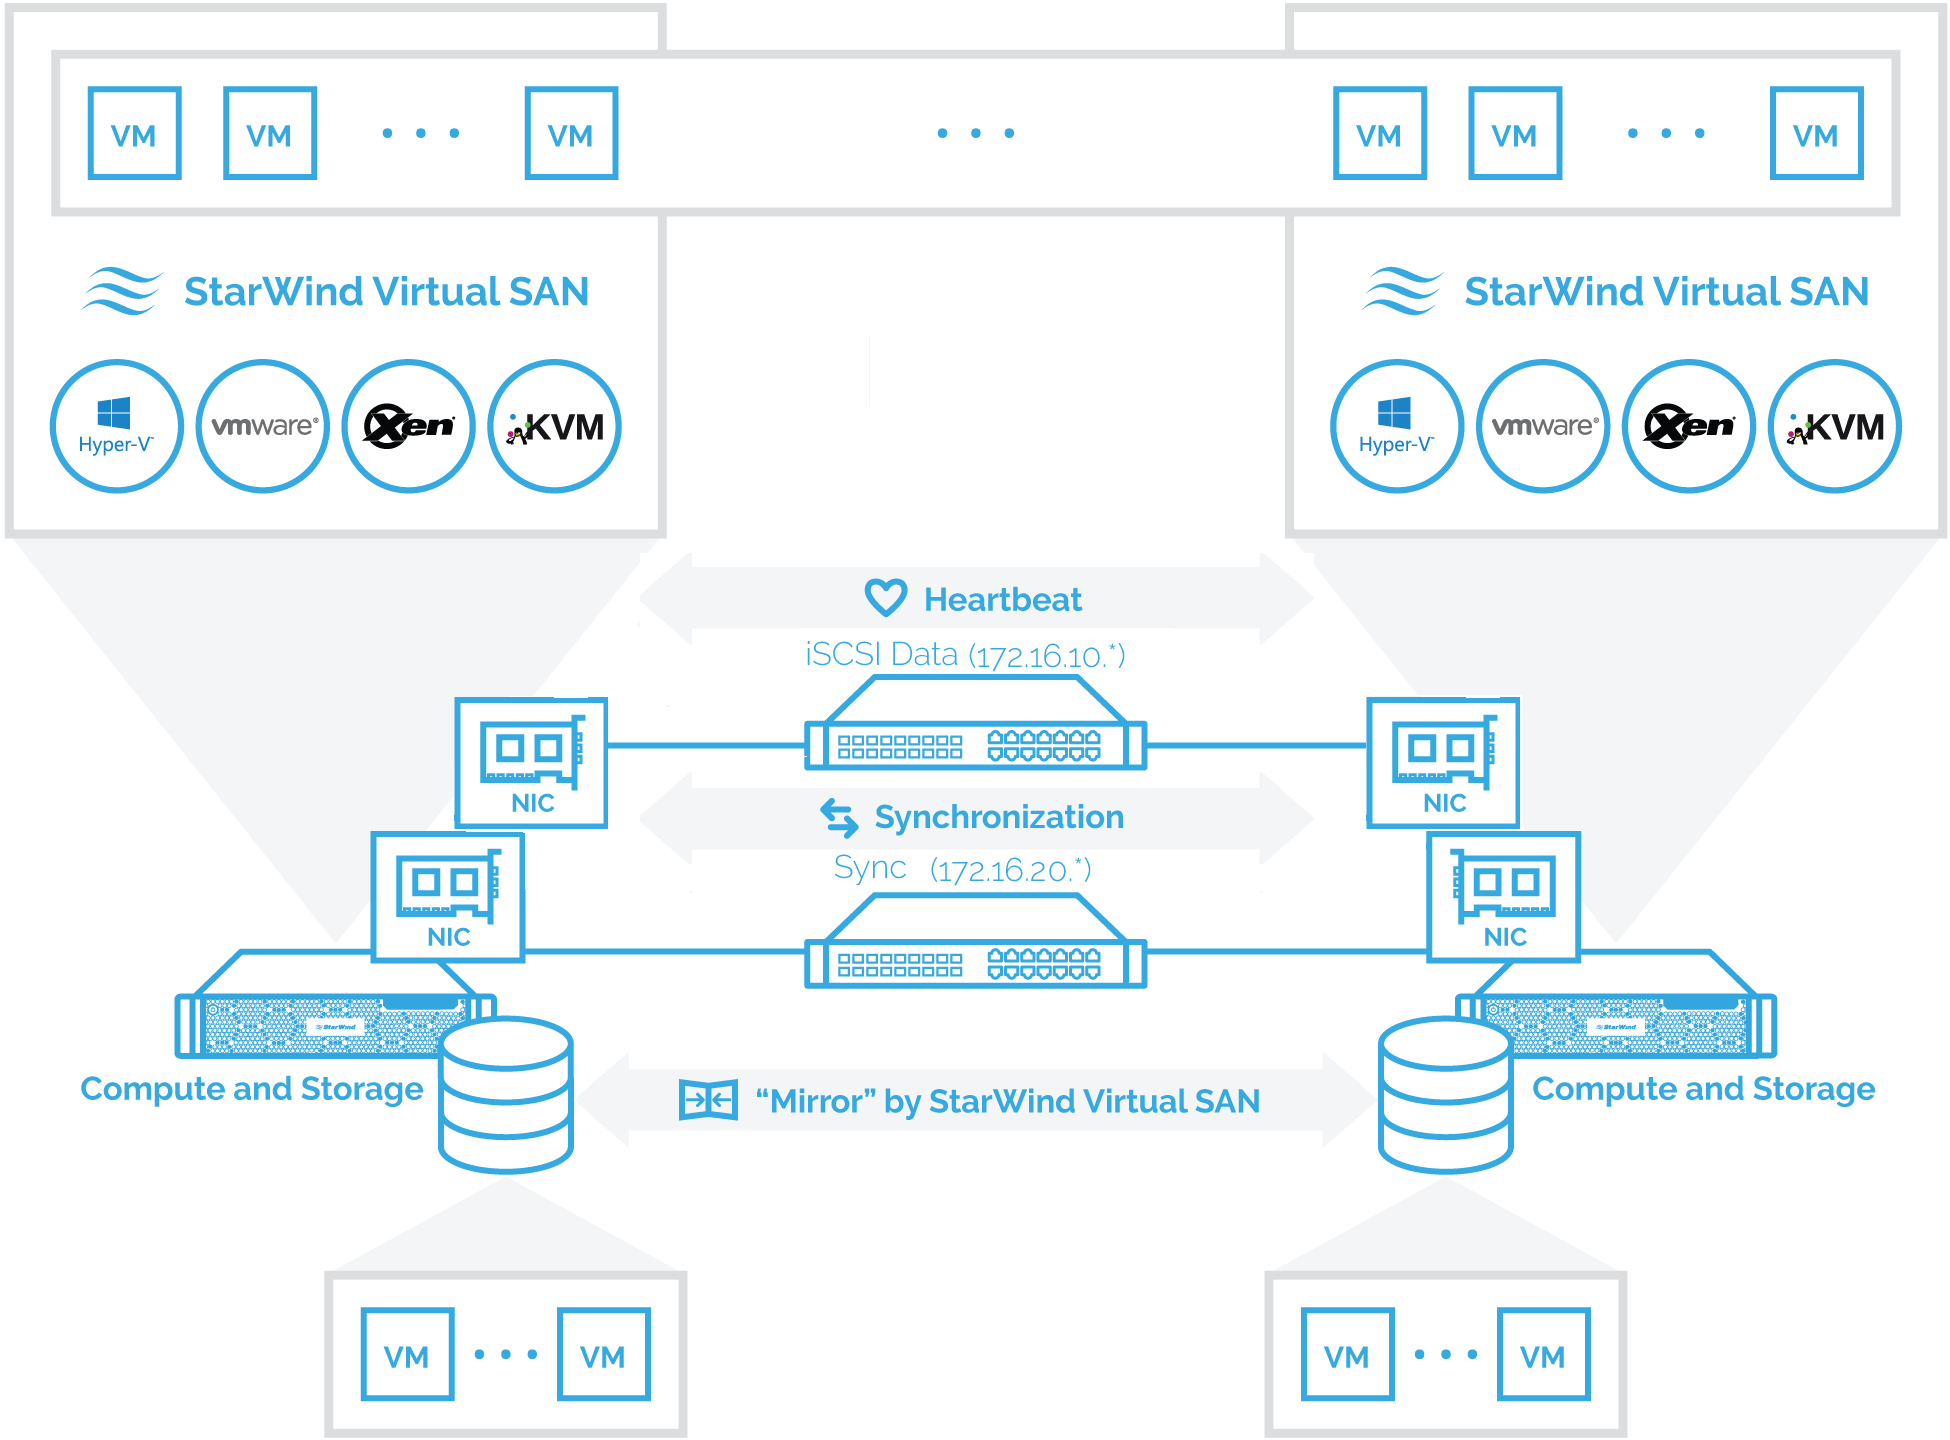 Hyperconverged scenario setup. Configuration: a two-node hypervisor cluster converged with StarWind Virtual SAN